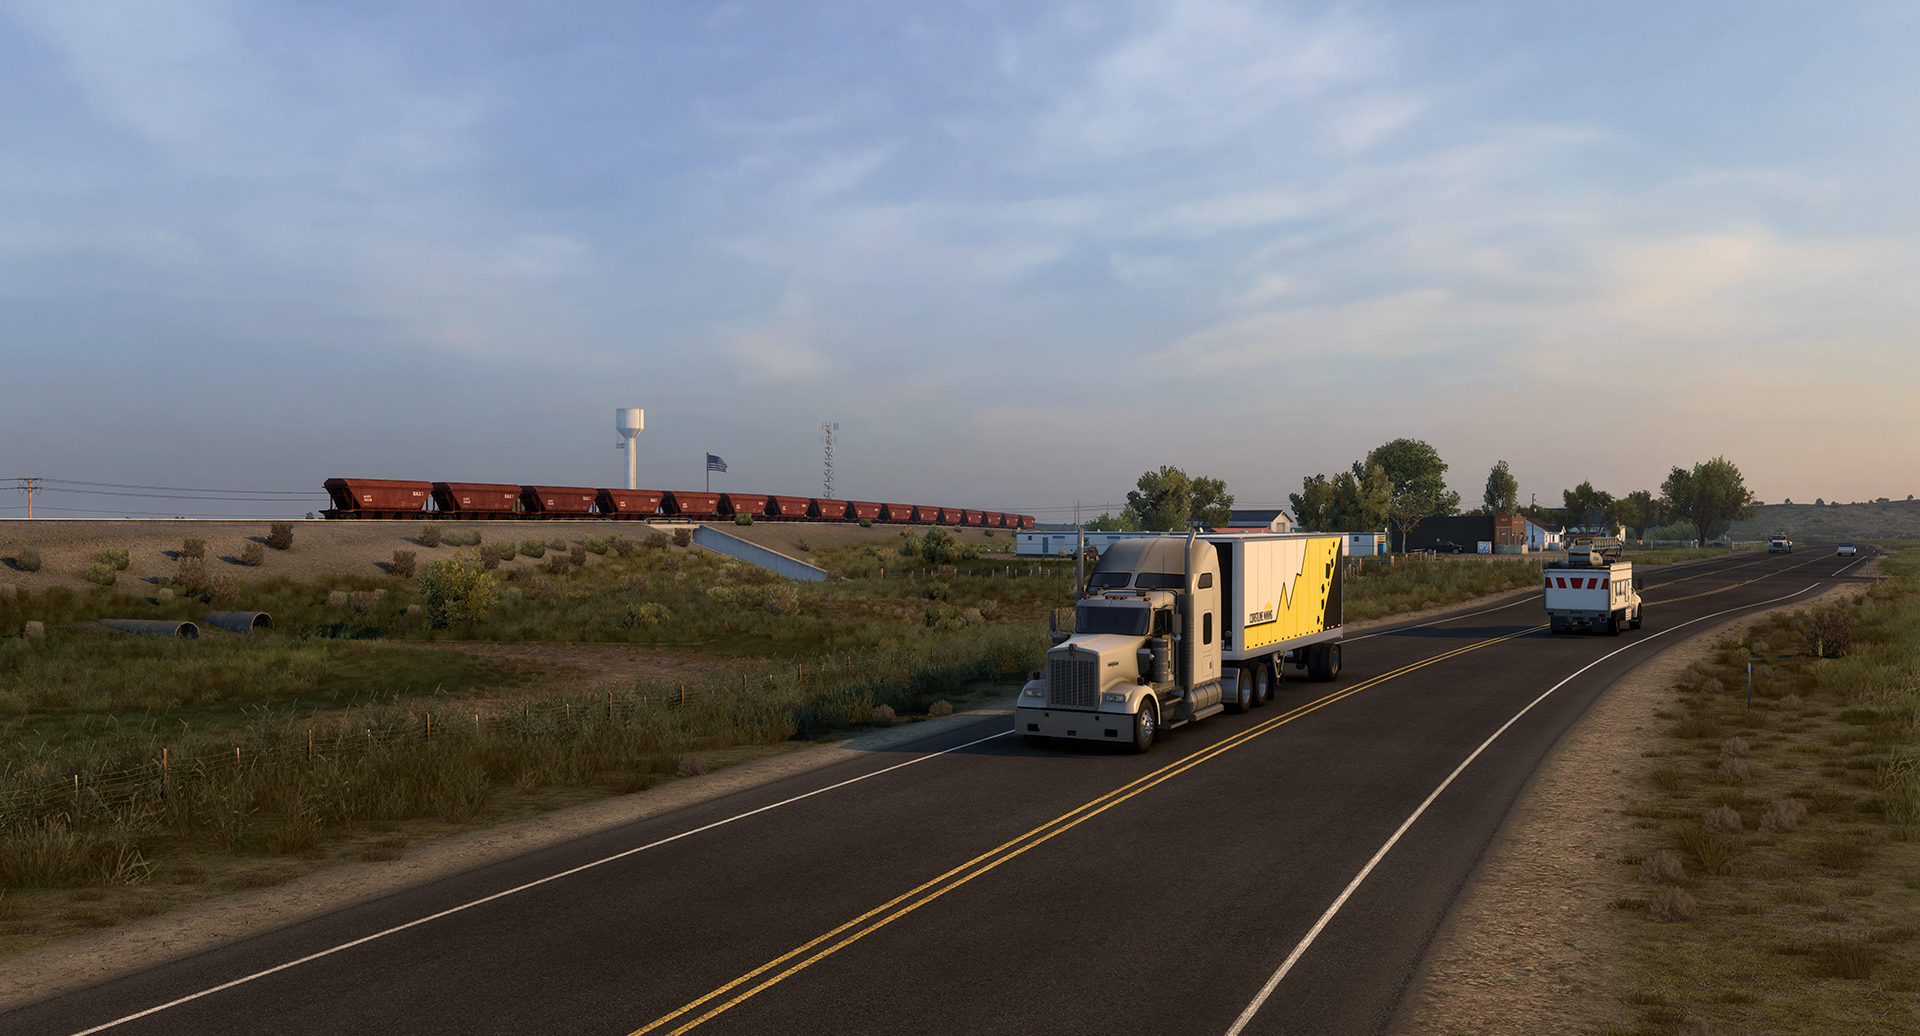 American Truck SimulatorWyoming DLC will see a graphical overhaul